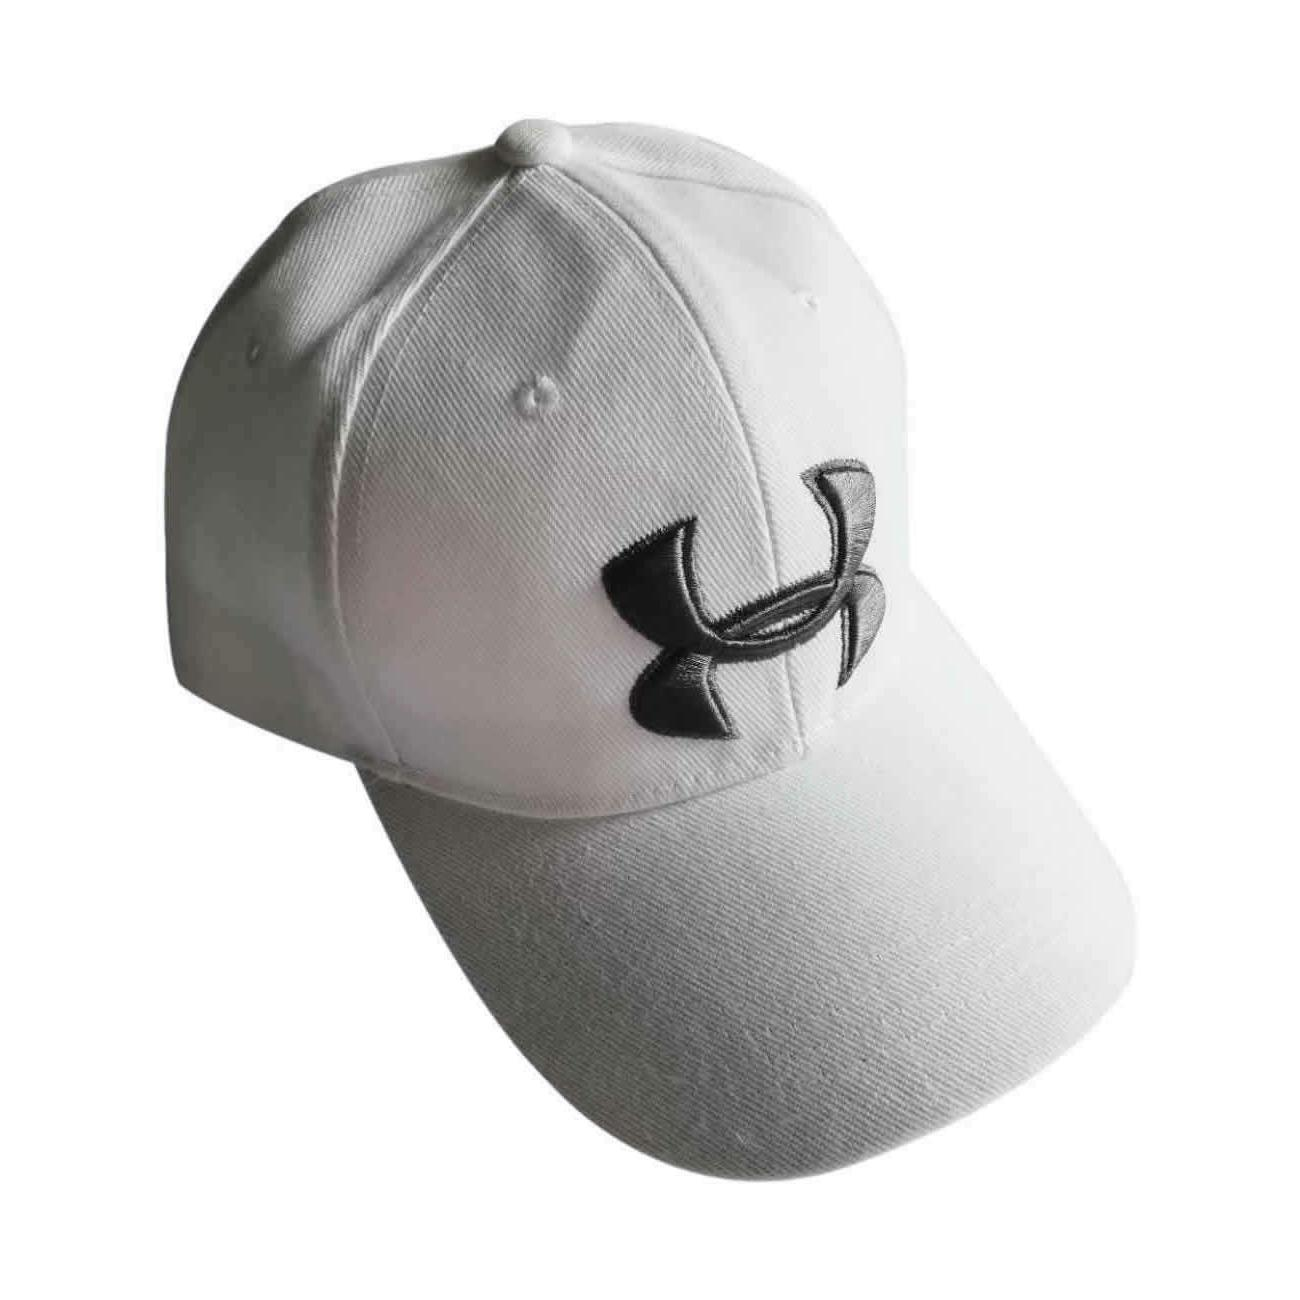 Golf Baseball Cap Embroidered Unisex Women